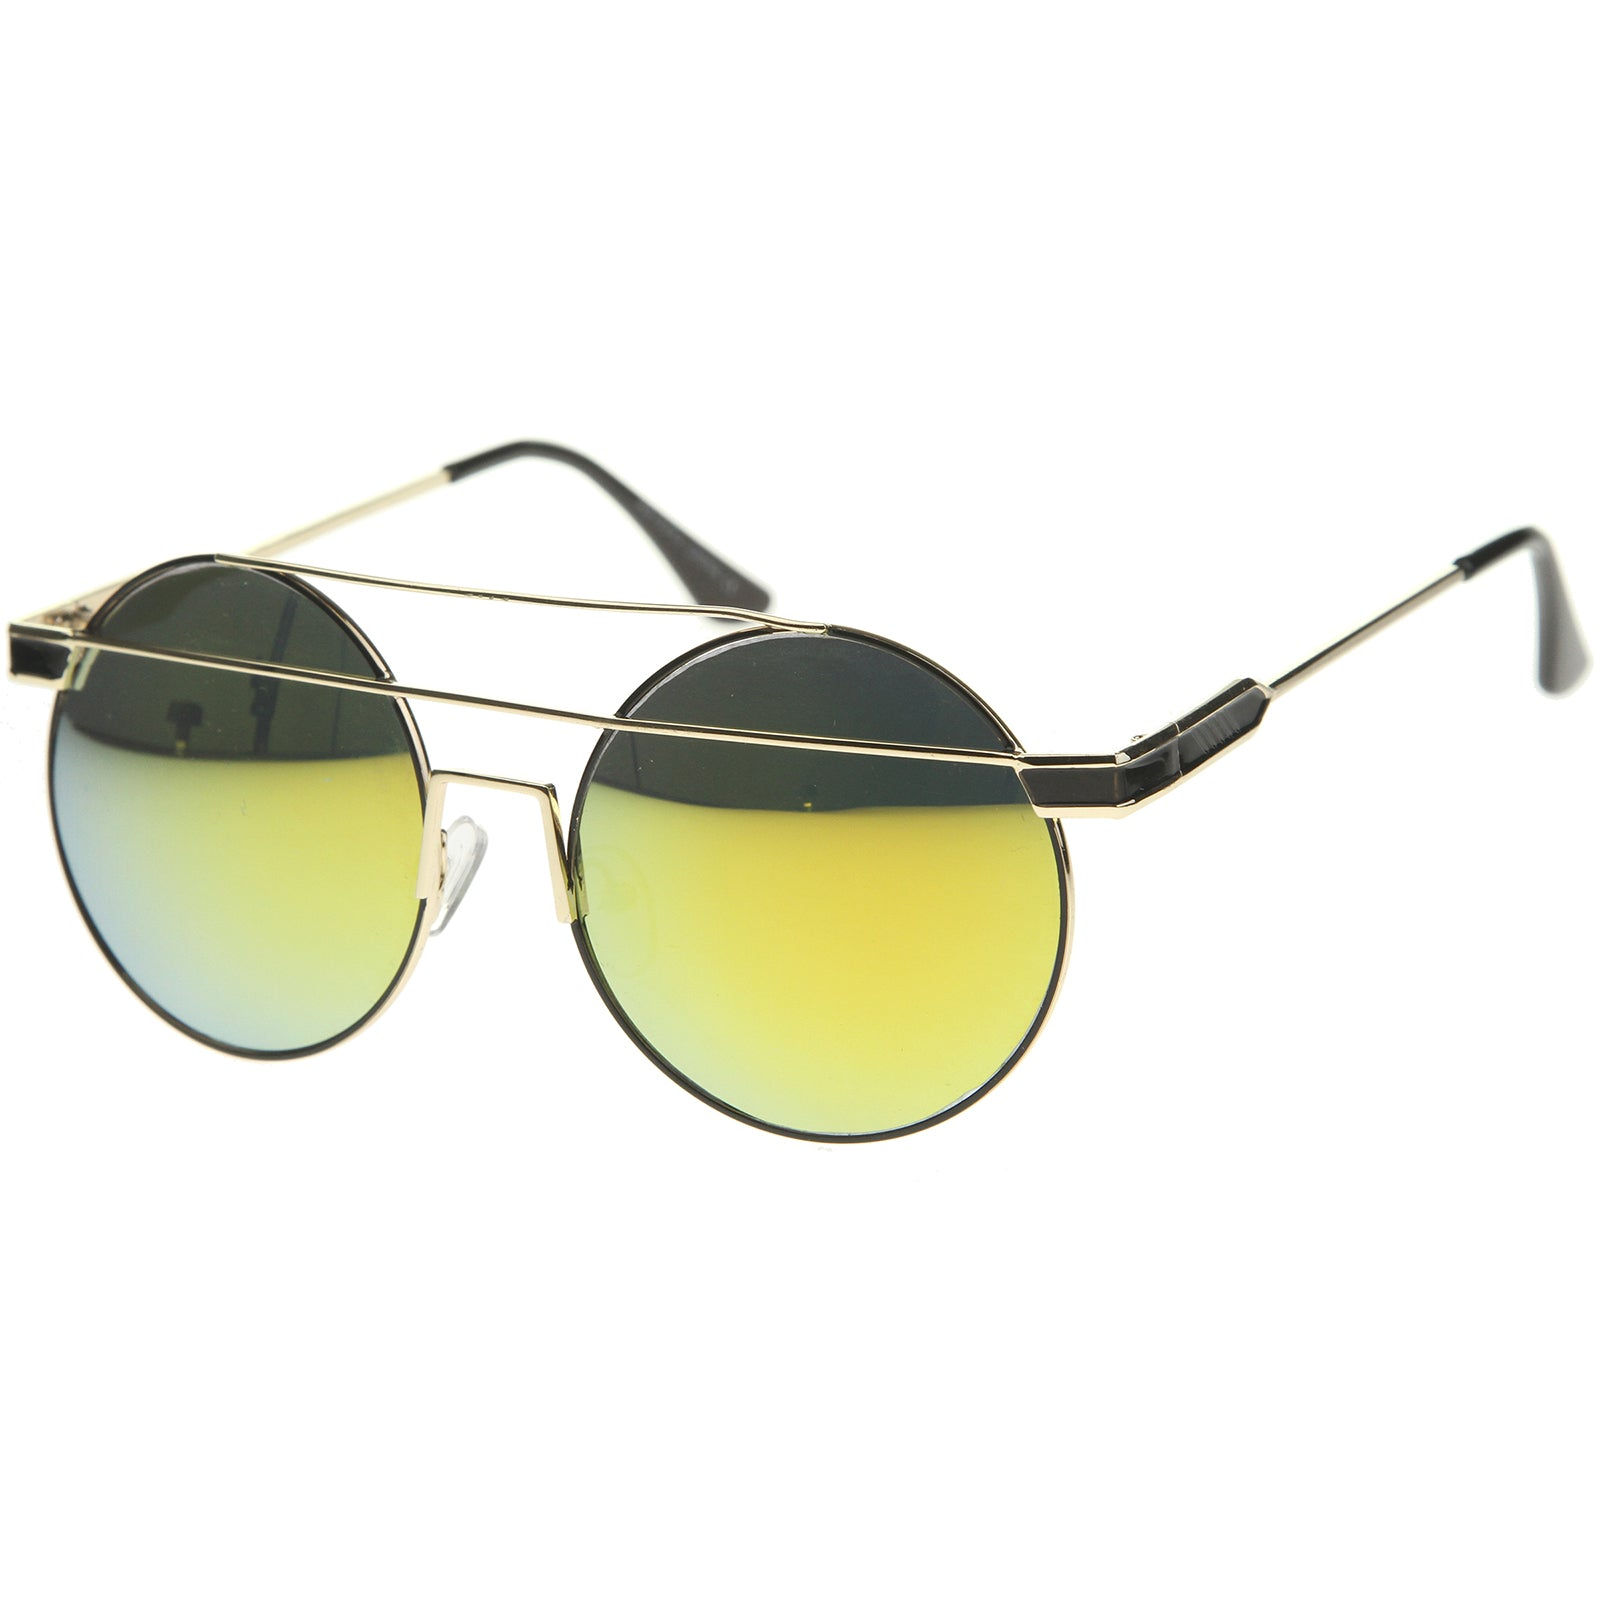 Modern Metal Frame Double Bridge Colored Mirror Lens Round Sunglasses 59mm - sunglass.la - 6